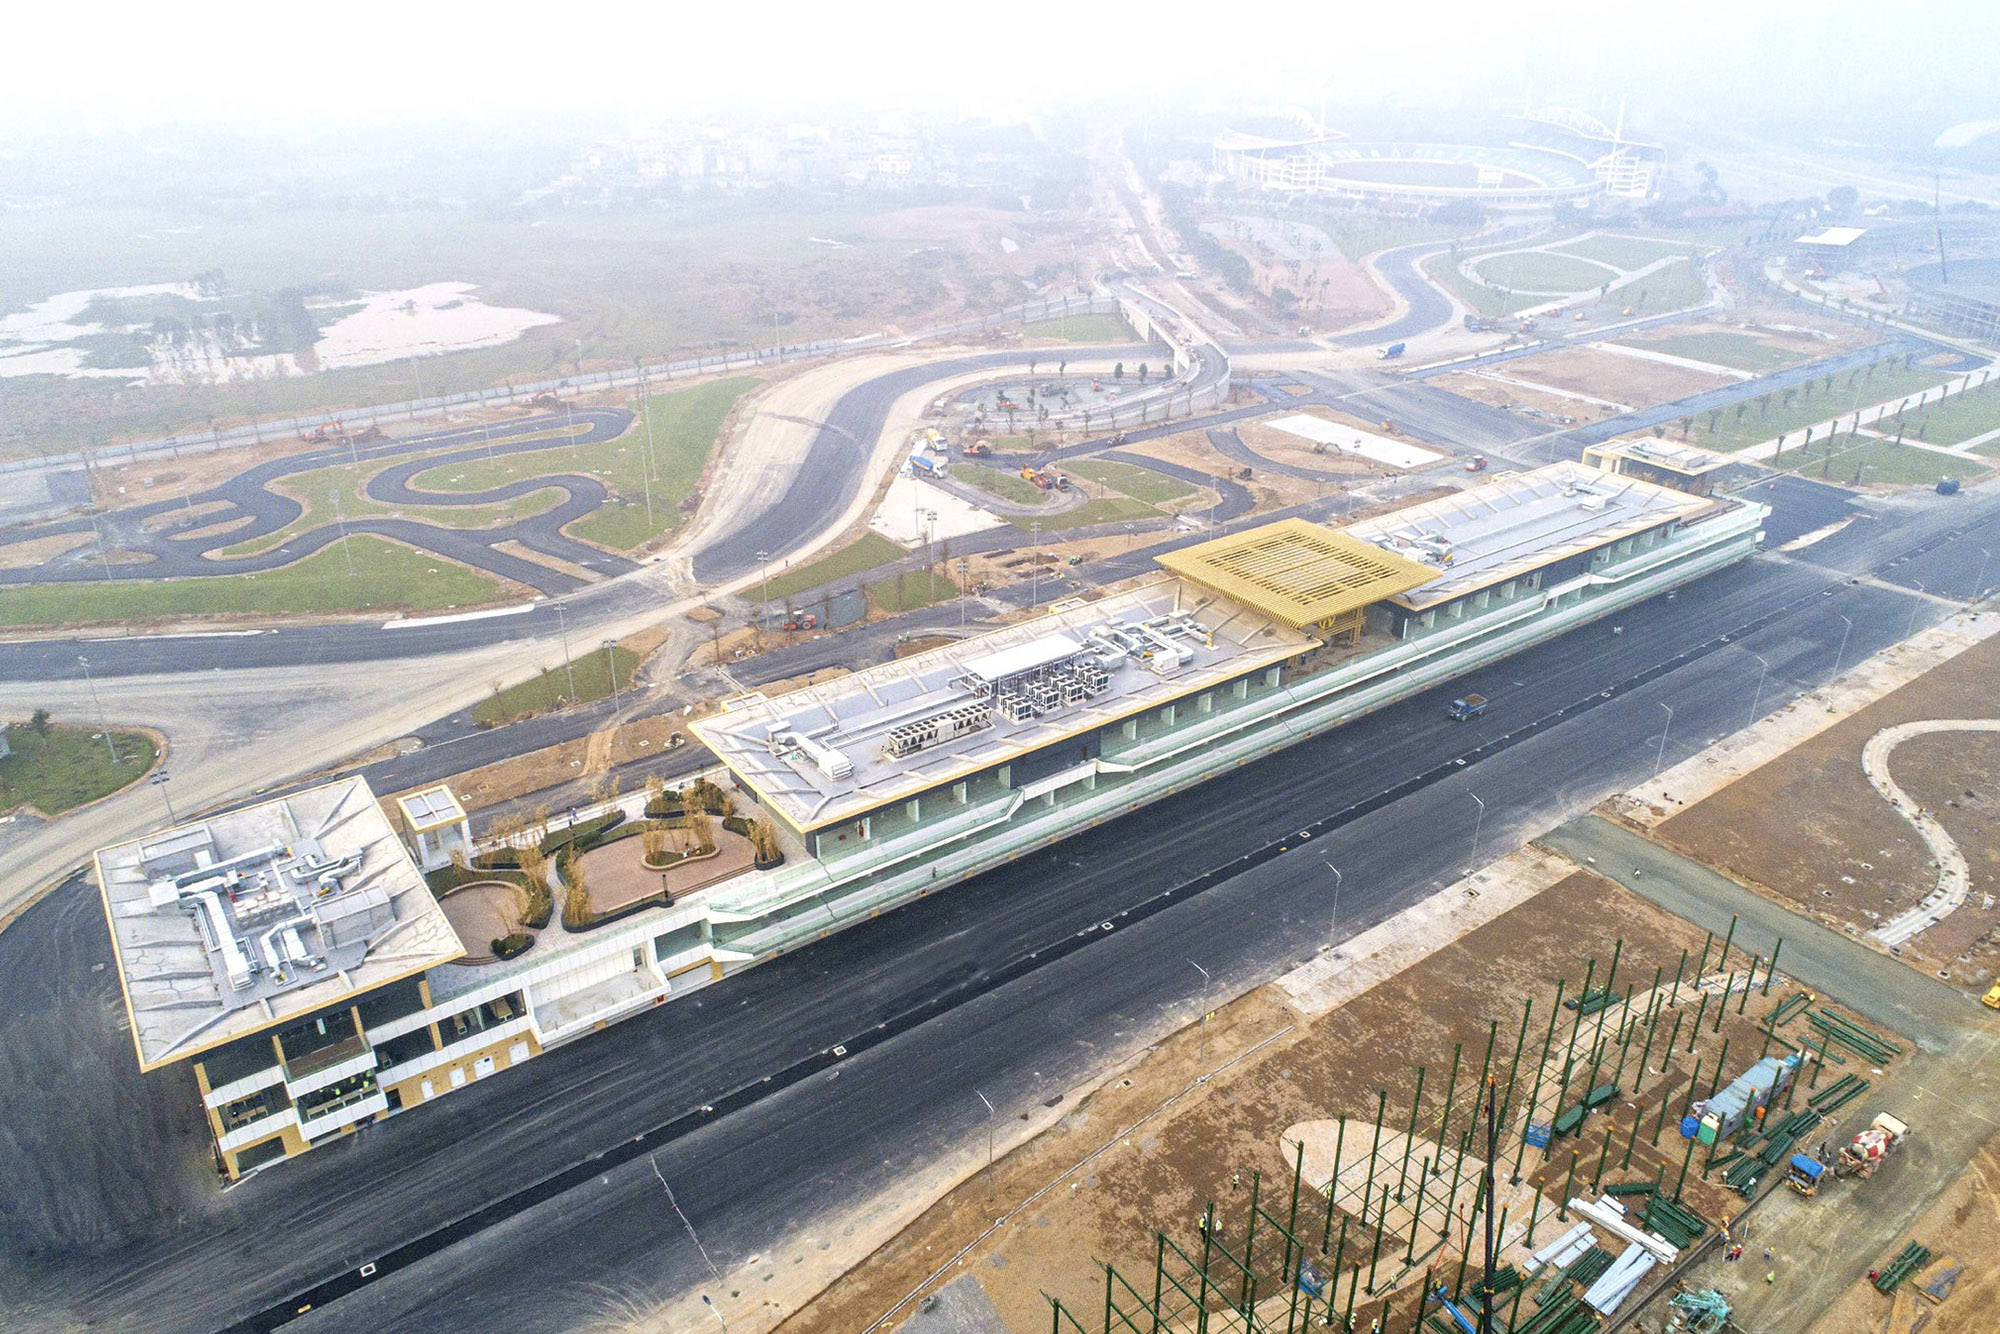 Hanoi circuit: pit building complete ahead of 2020 Vietnamese GP